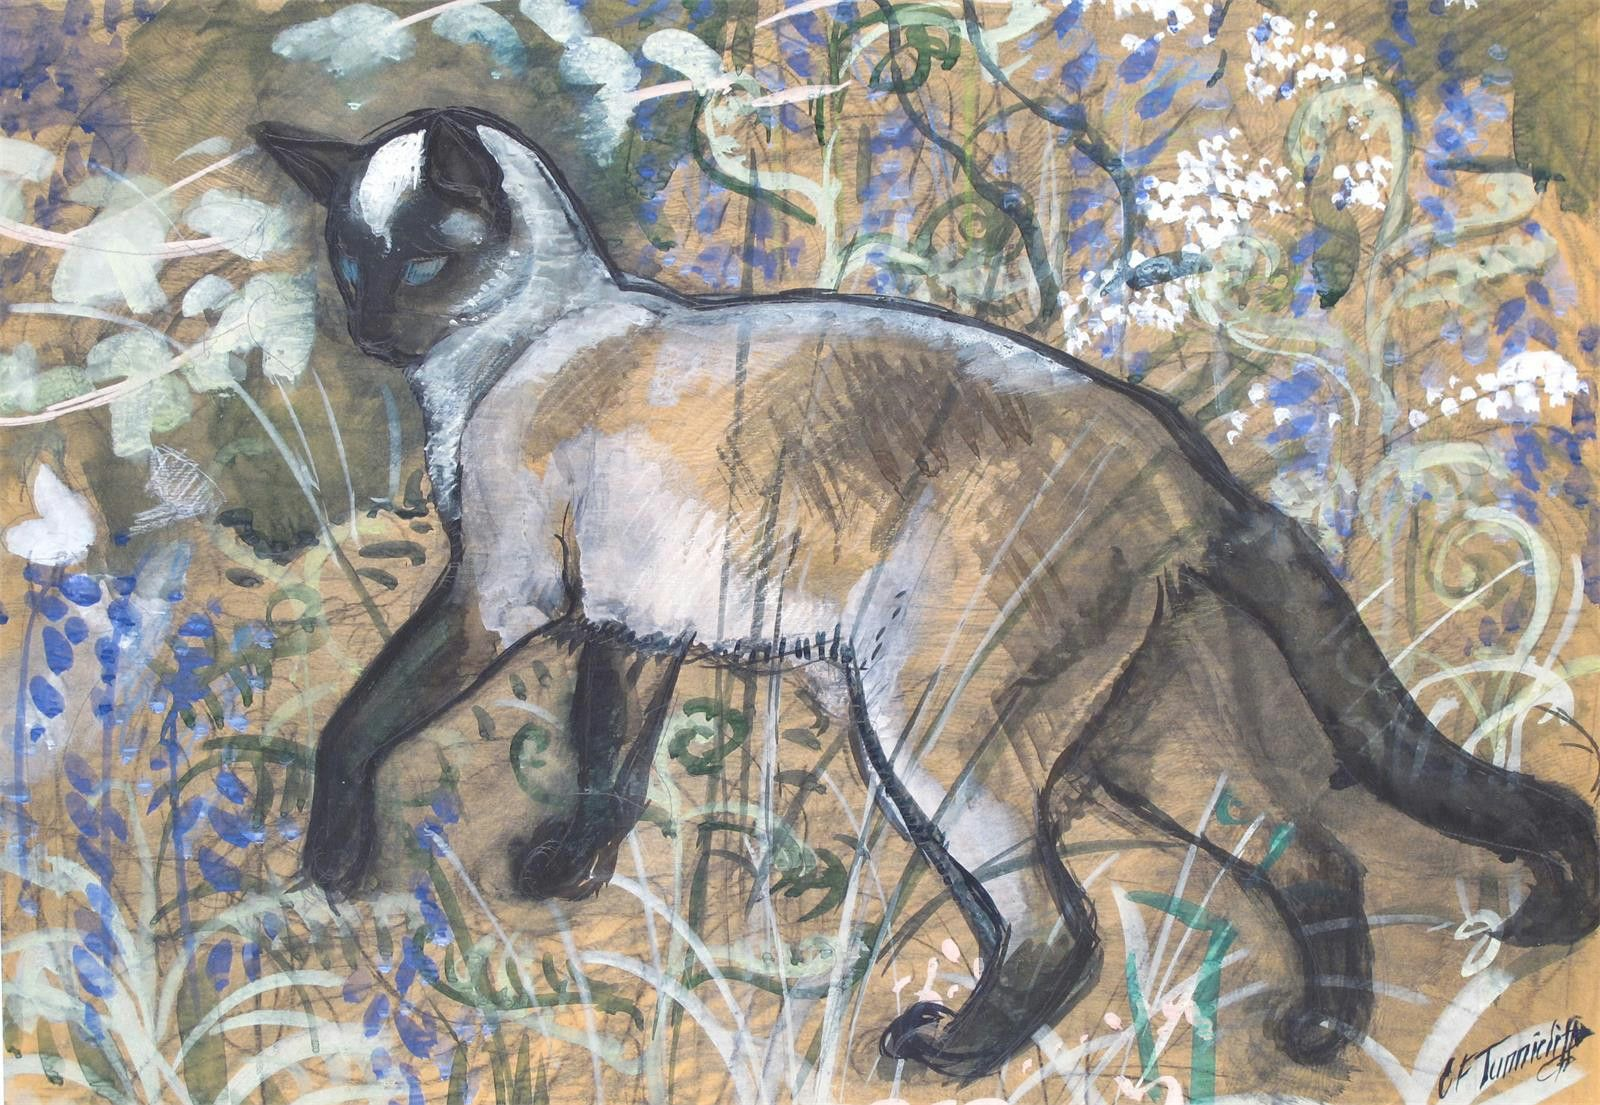 A Siamese cat stalking a butterfly amongst bluebells - C F Tunnicliffe (1901-1979)